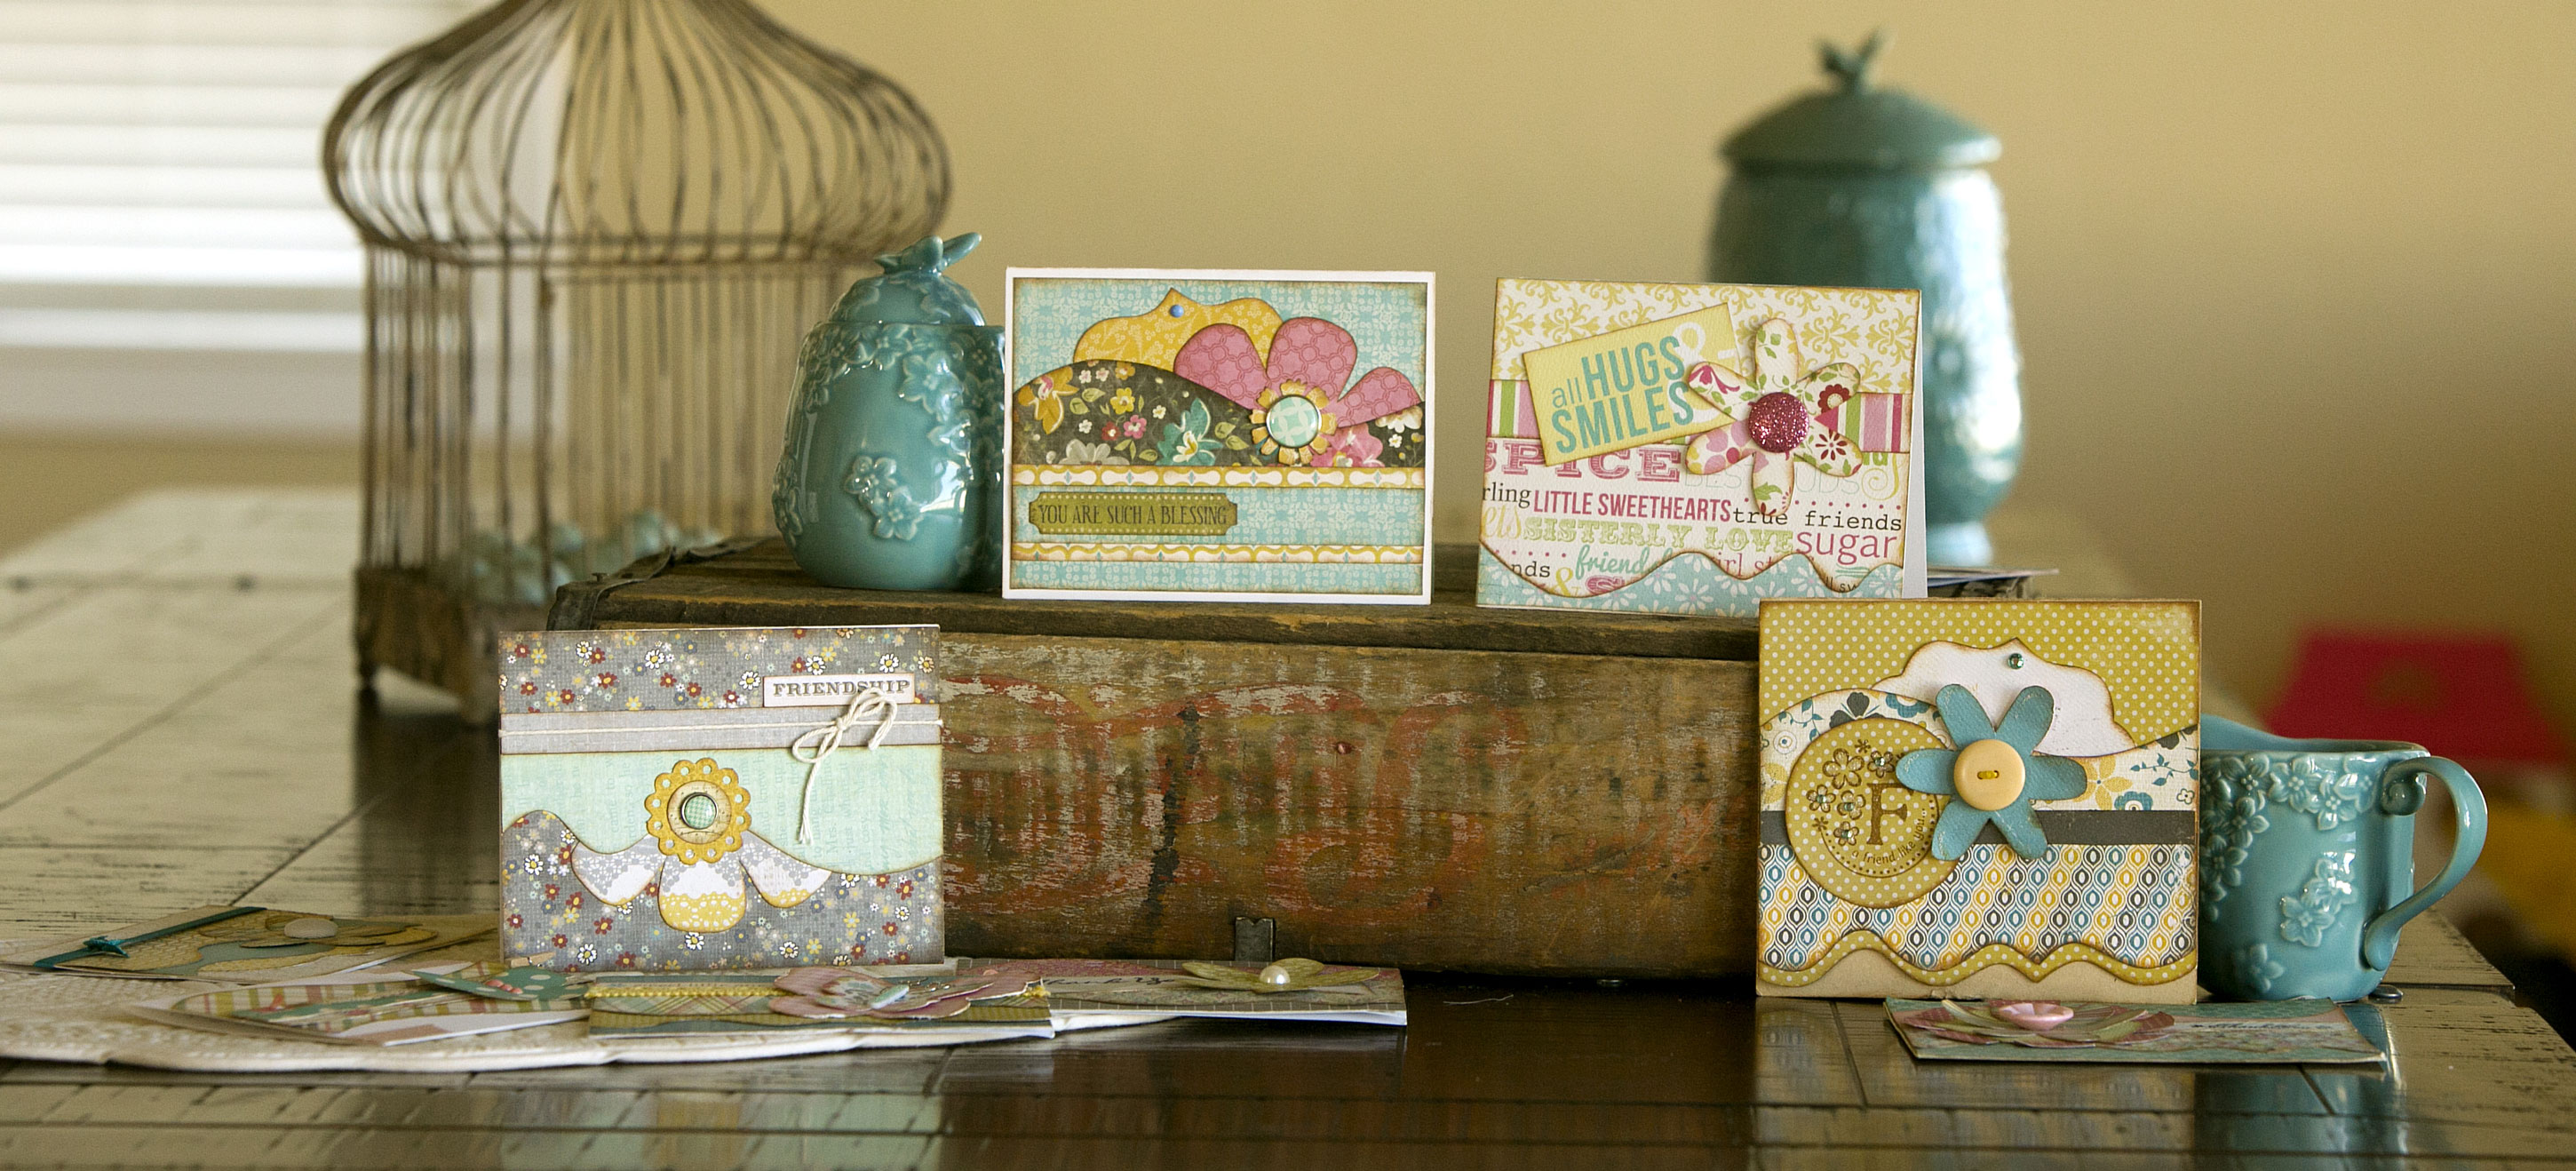 Find ideas for making beautiful, elaborate, homemade cards.